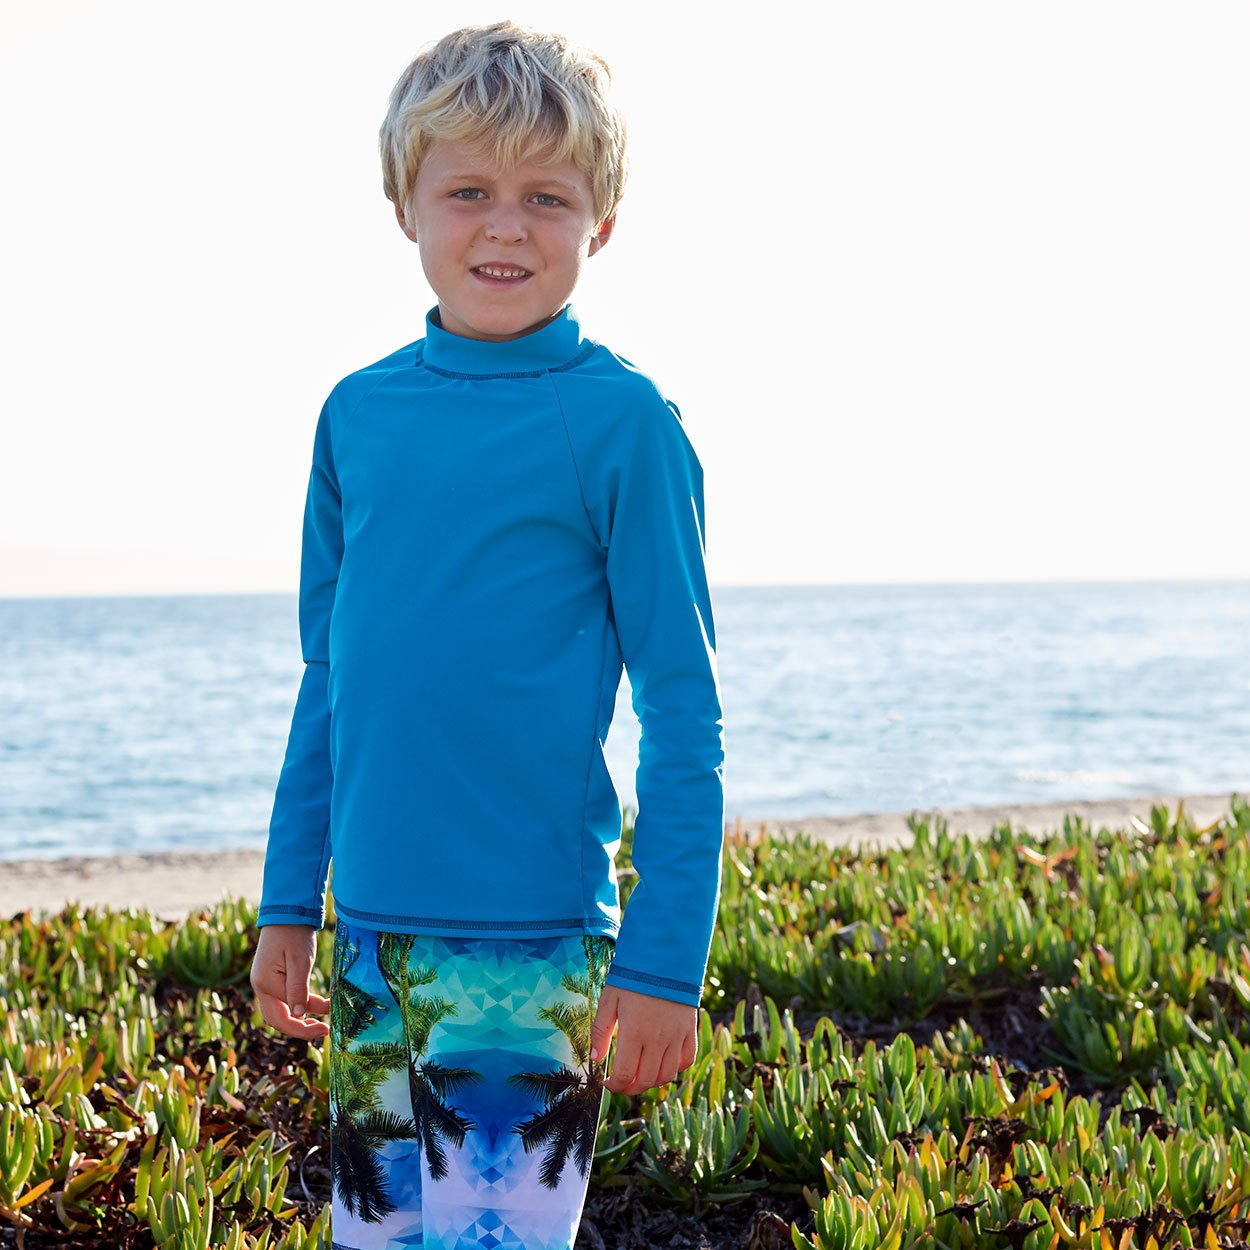 Teal Kids Long Sleeve Rash Guard Top Upf50 Boys Girls Unisex Size 2 12 Surfer Boy by the Ocean Sunpoplife